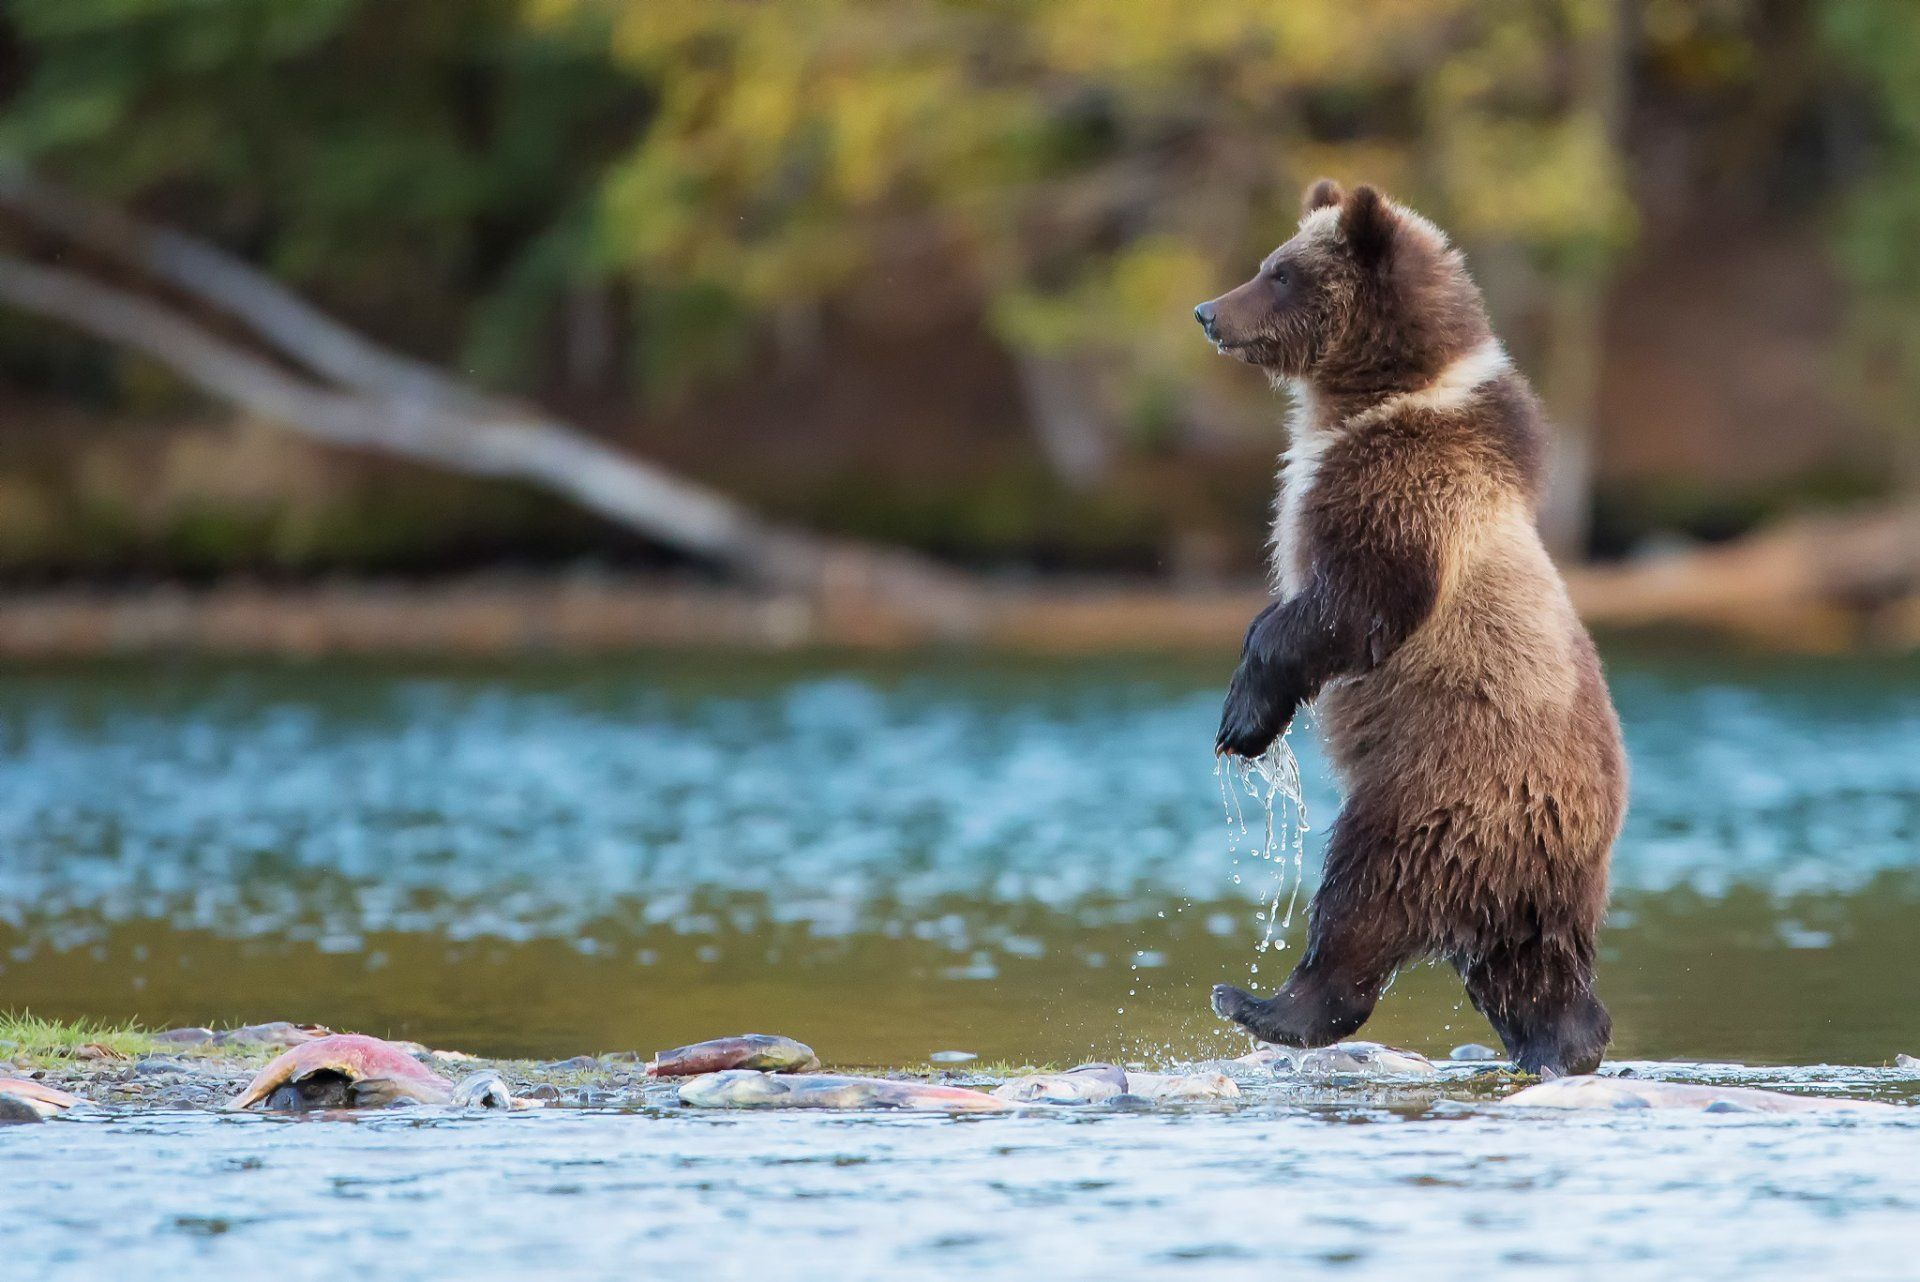 bear grizzly predator is canada river water fish nature ...